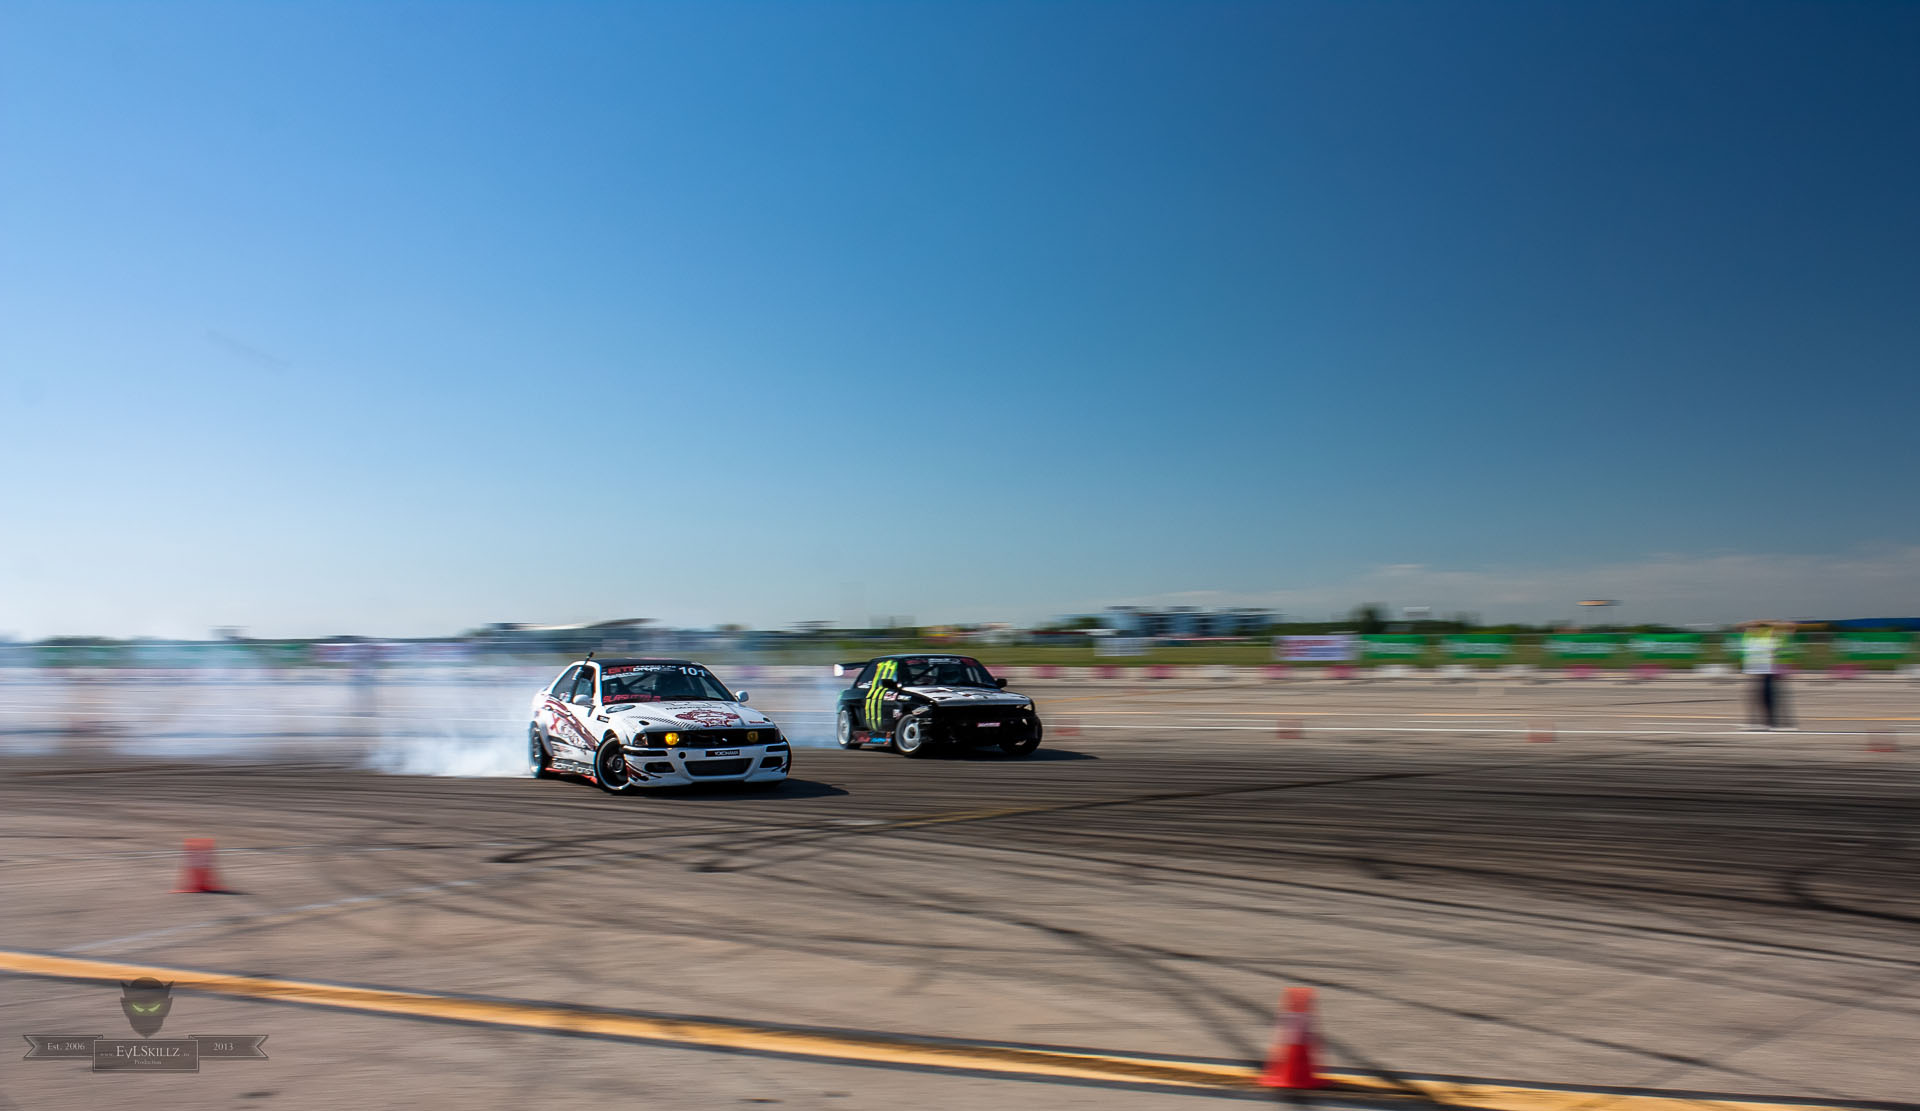 gtt-drift-series-2013-round-2-baneasa-airport-1541